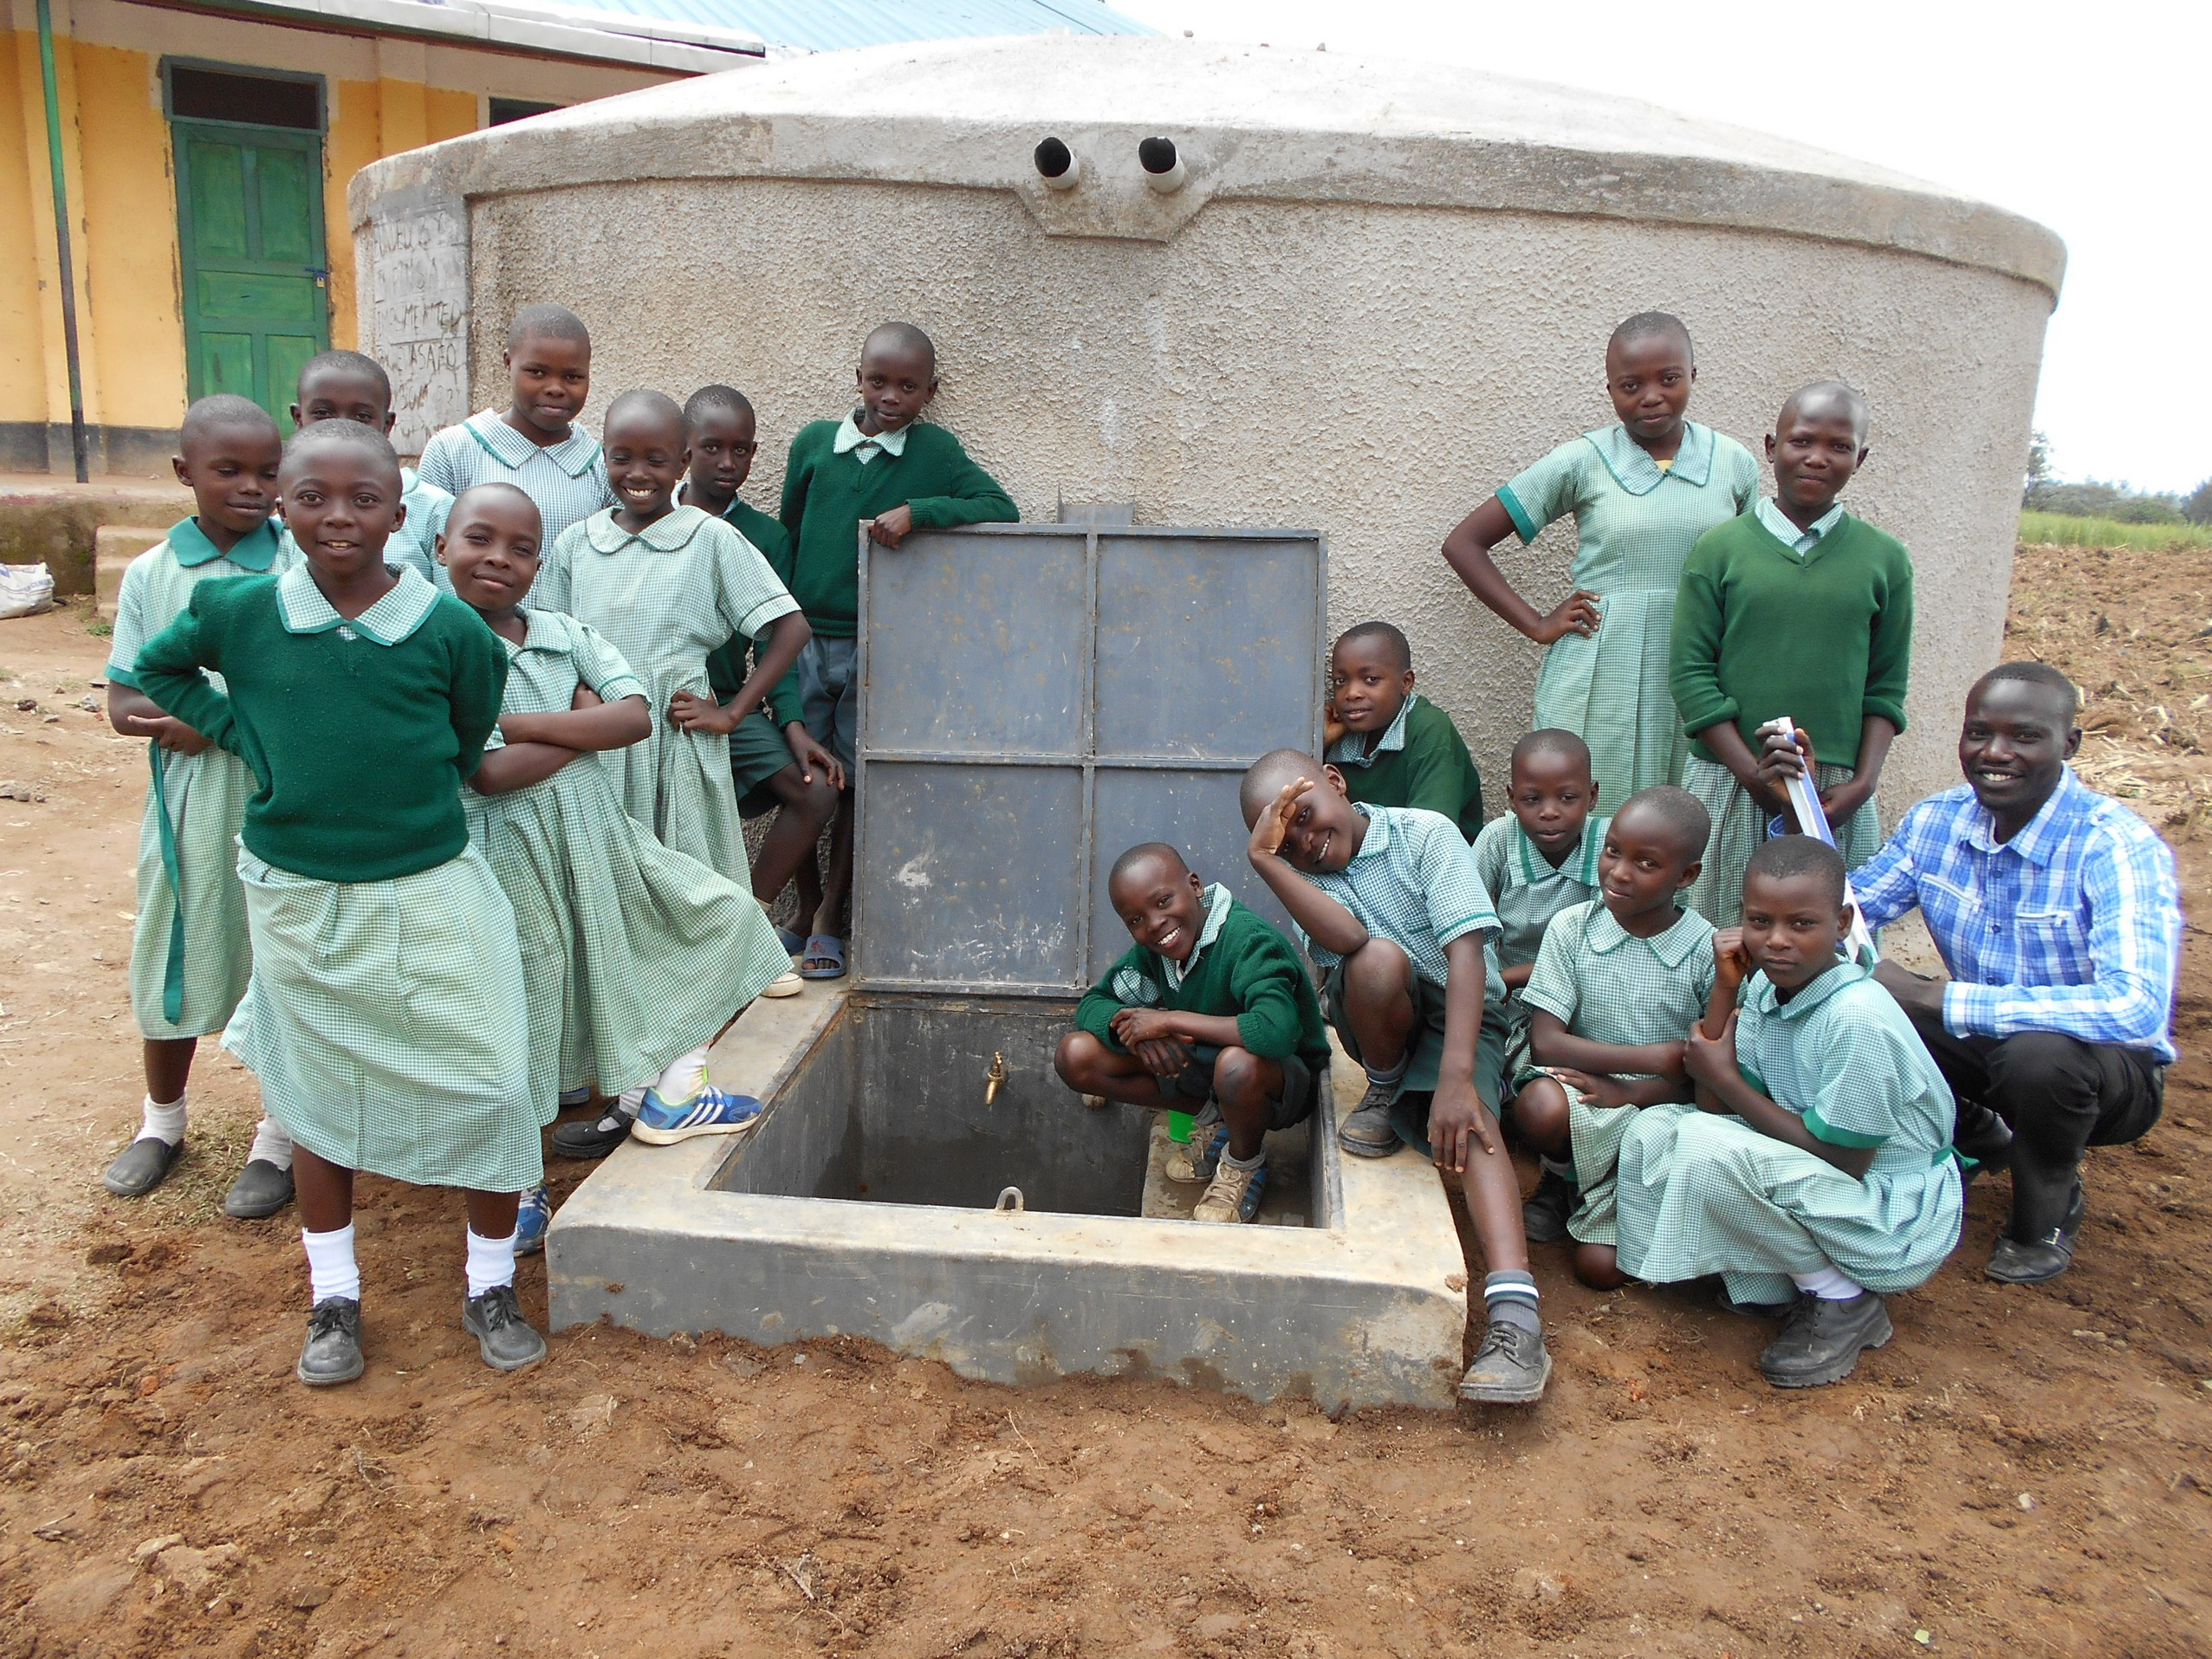 The Water Project : 40-kenya19077-students-and-staff-pose-with-rain-tank